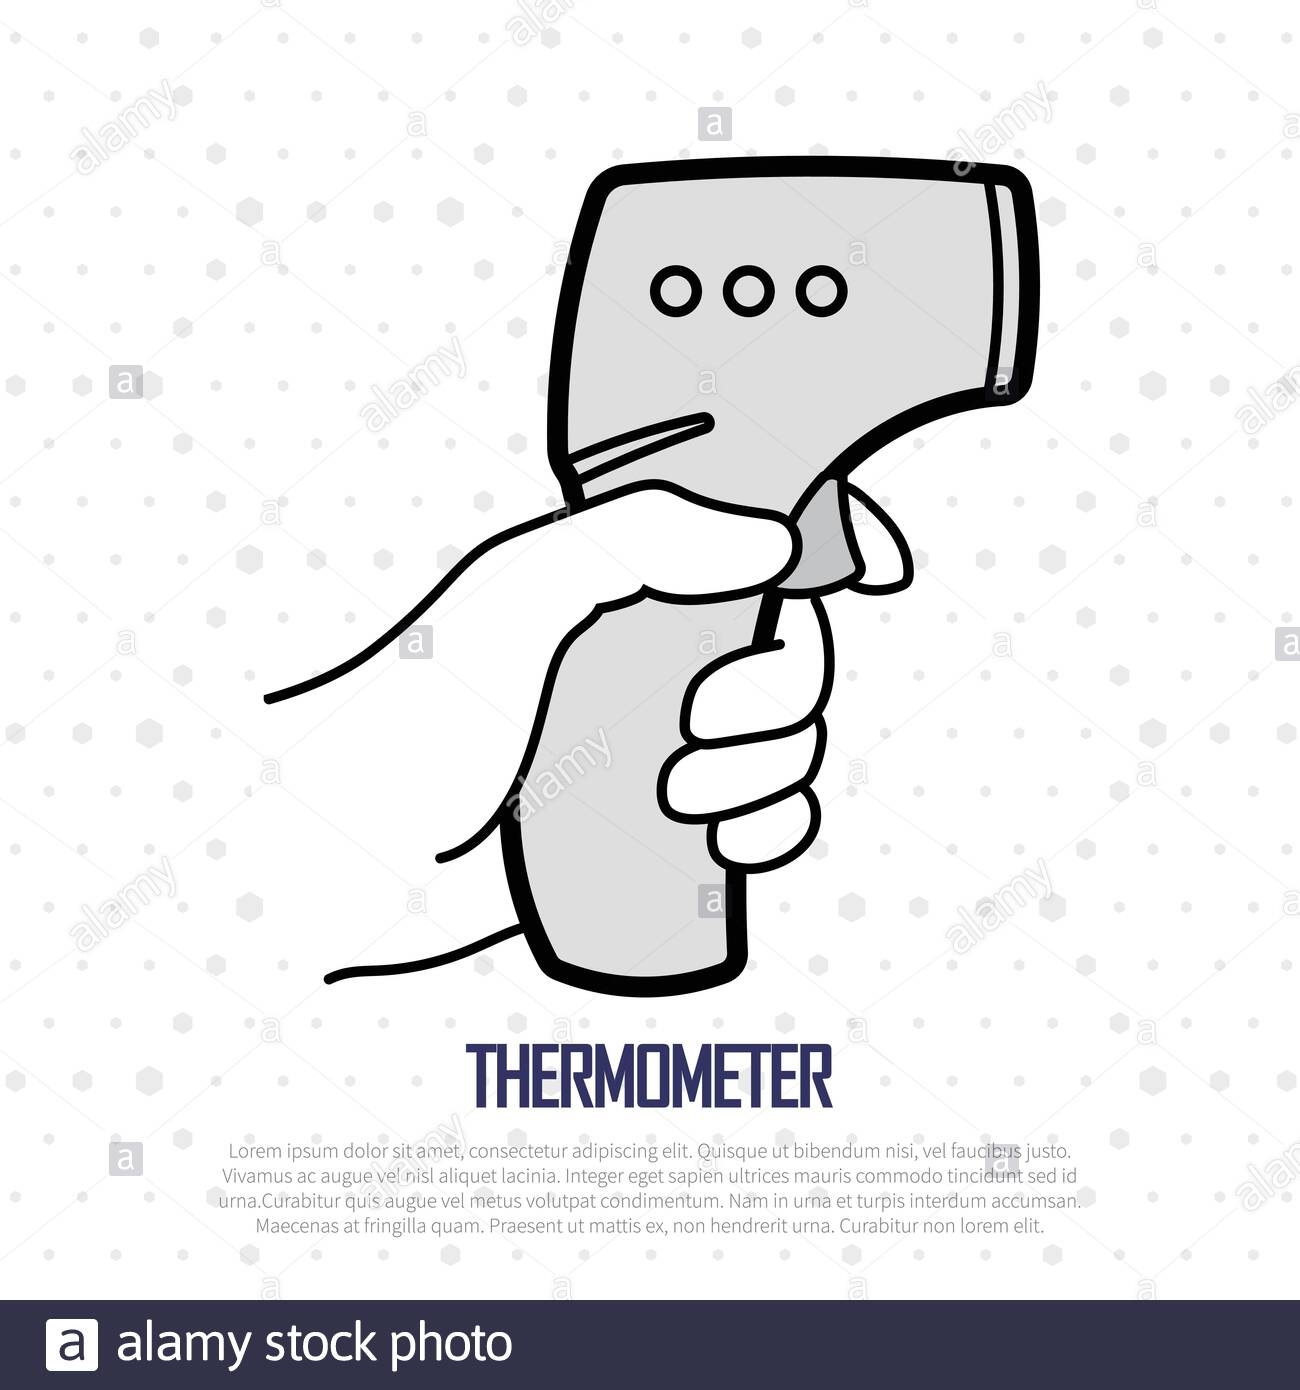 Electronic Thermometer For Temperature Measurement In Patients With Fever Stock Vector Image Art Alamy Definizione e significato del termine termometro. https www alamy com electronic thermometer for temperature measurement in patients with fever image345151843 html